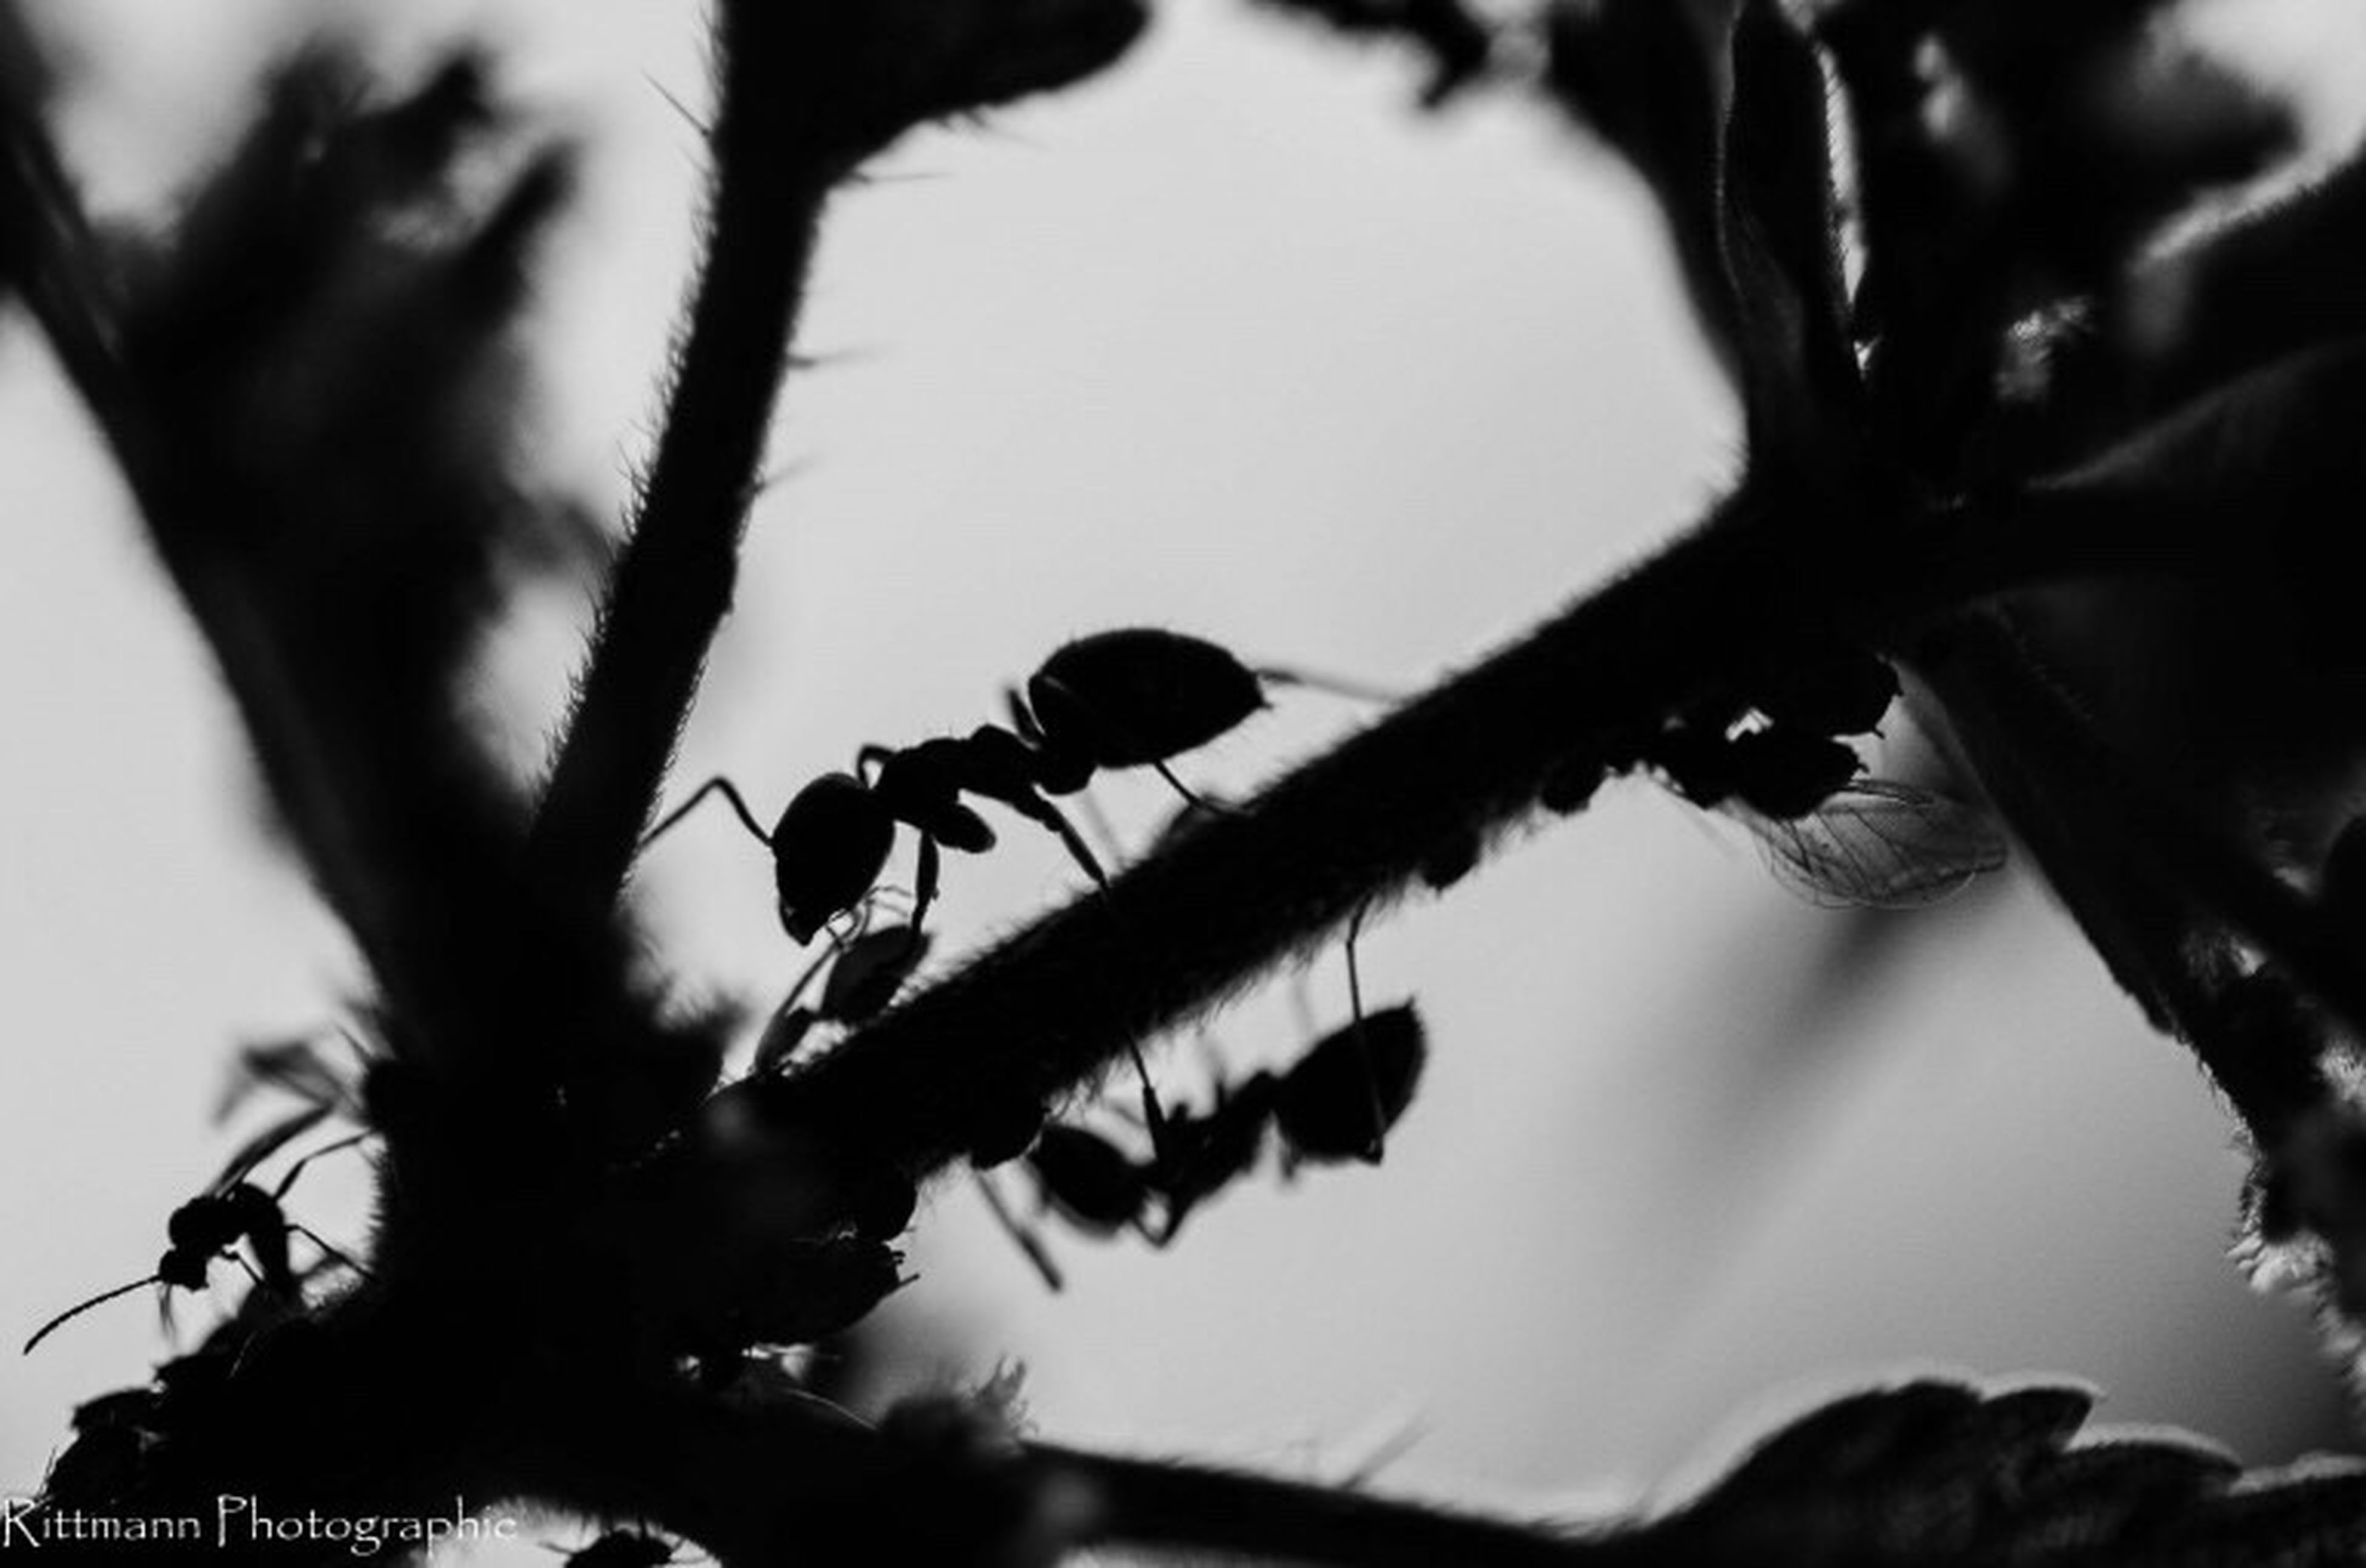 insect, animal themes, animals in the wild, one animal, close-up, animal wildlife, ant, nature, silhouette, no people, outdoors, day